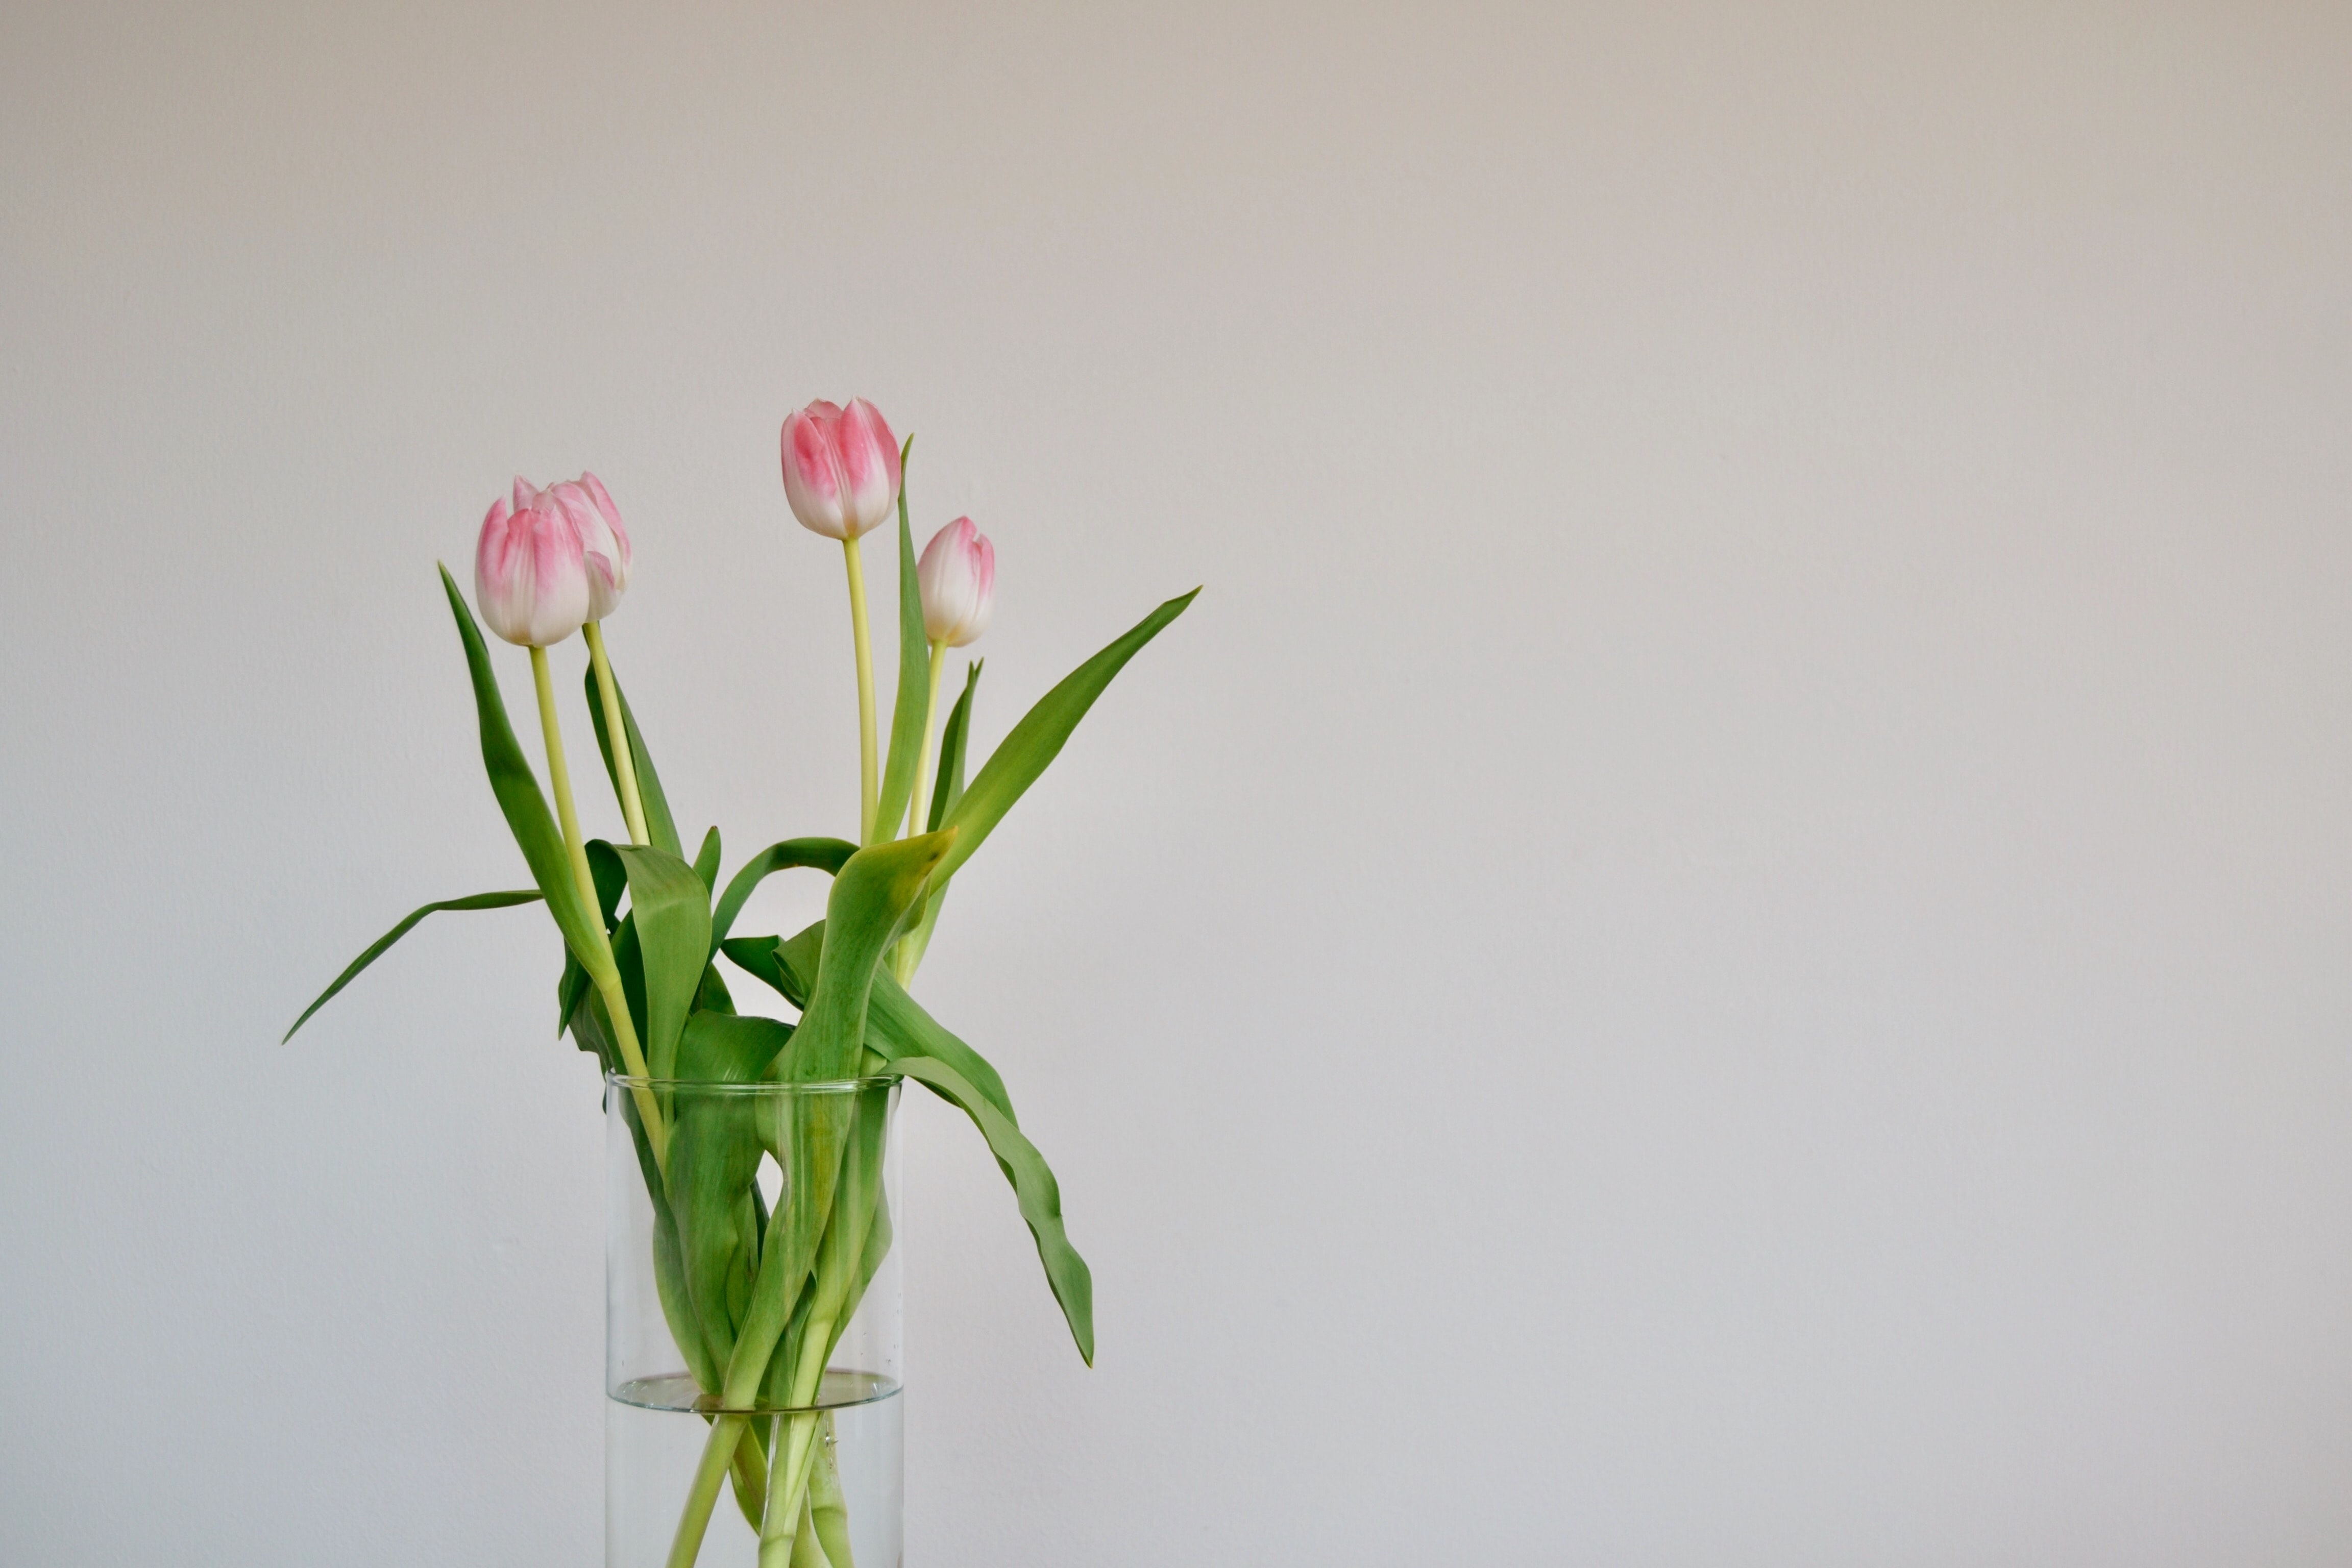 pink and white petaled flower bloom